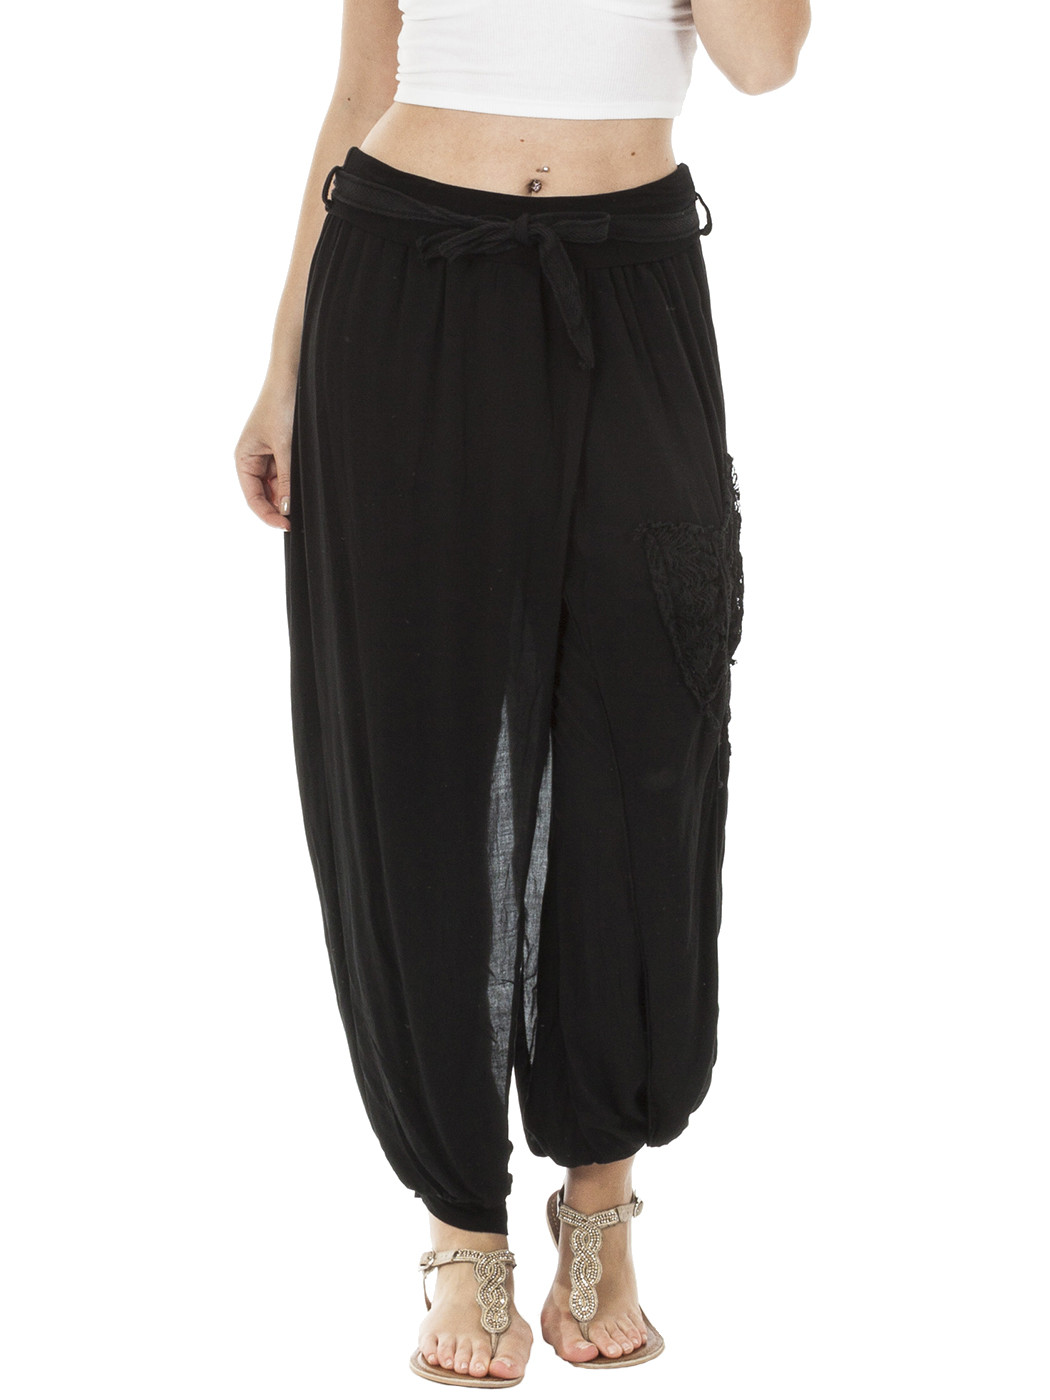 Harem Pants Retail Stores: Perfect pants for yoga, meditation and traveling. Buddha Pants available in 5 sizes, % organic colors & over 30 patterns.